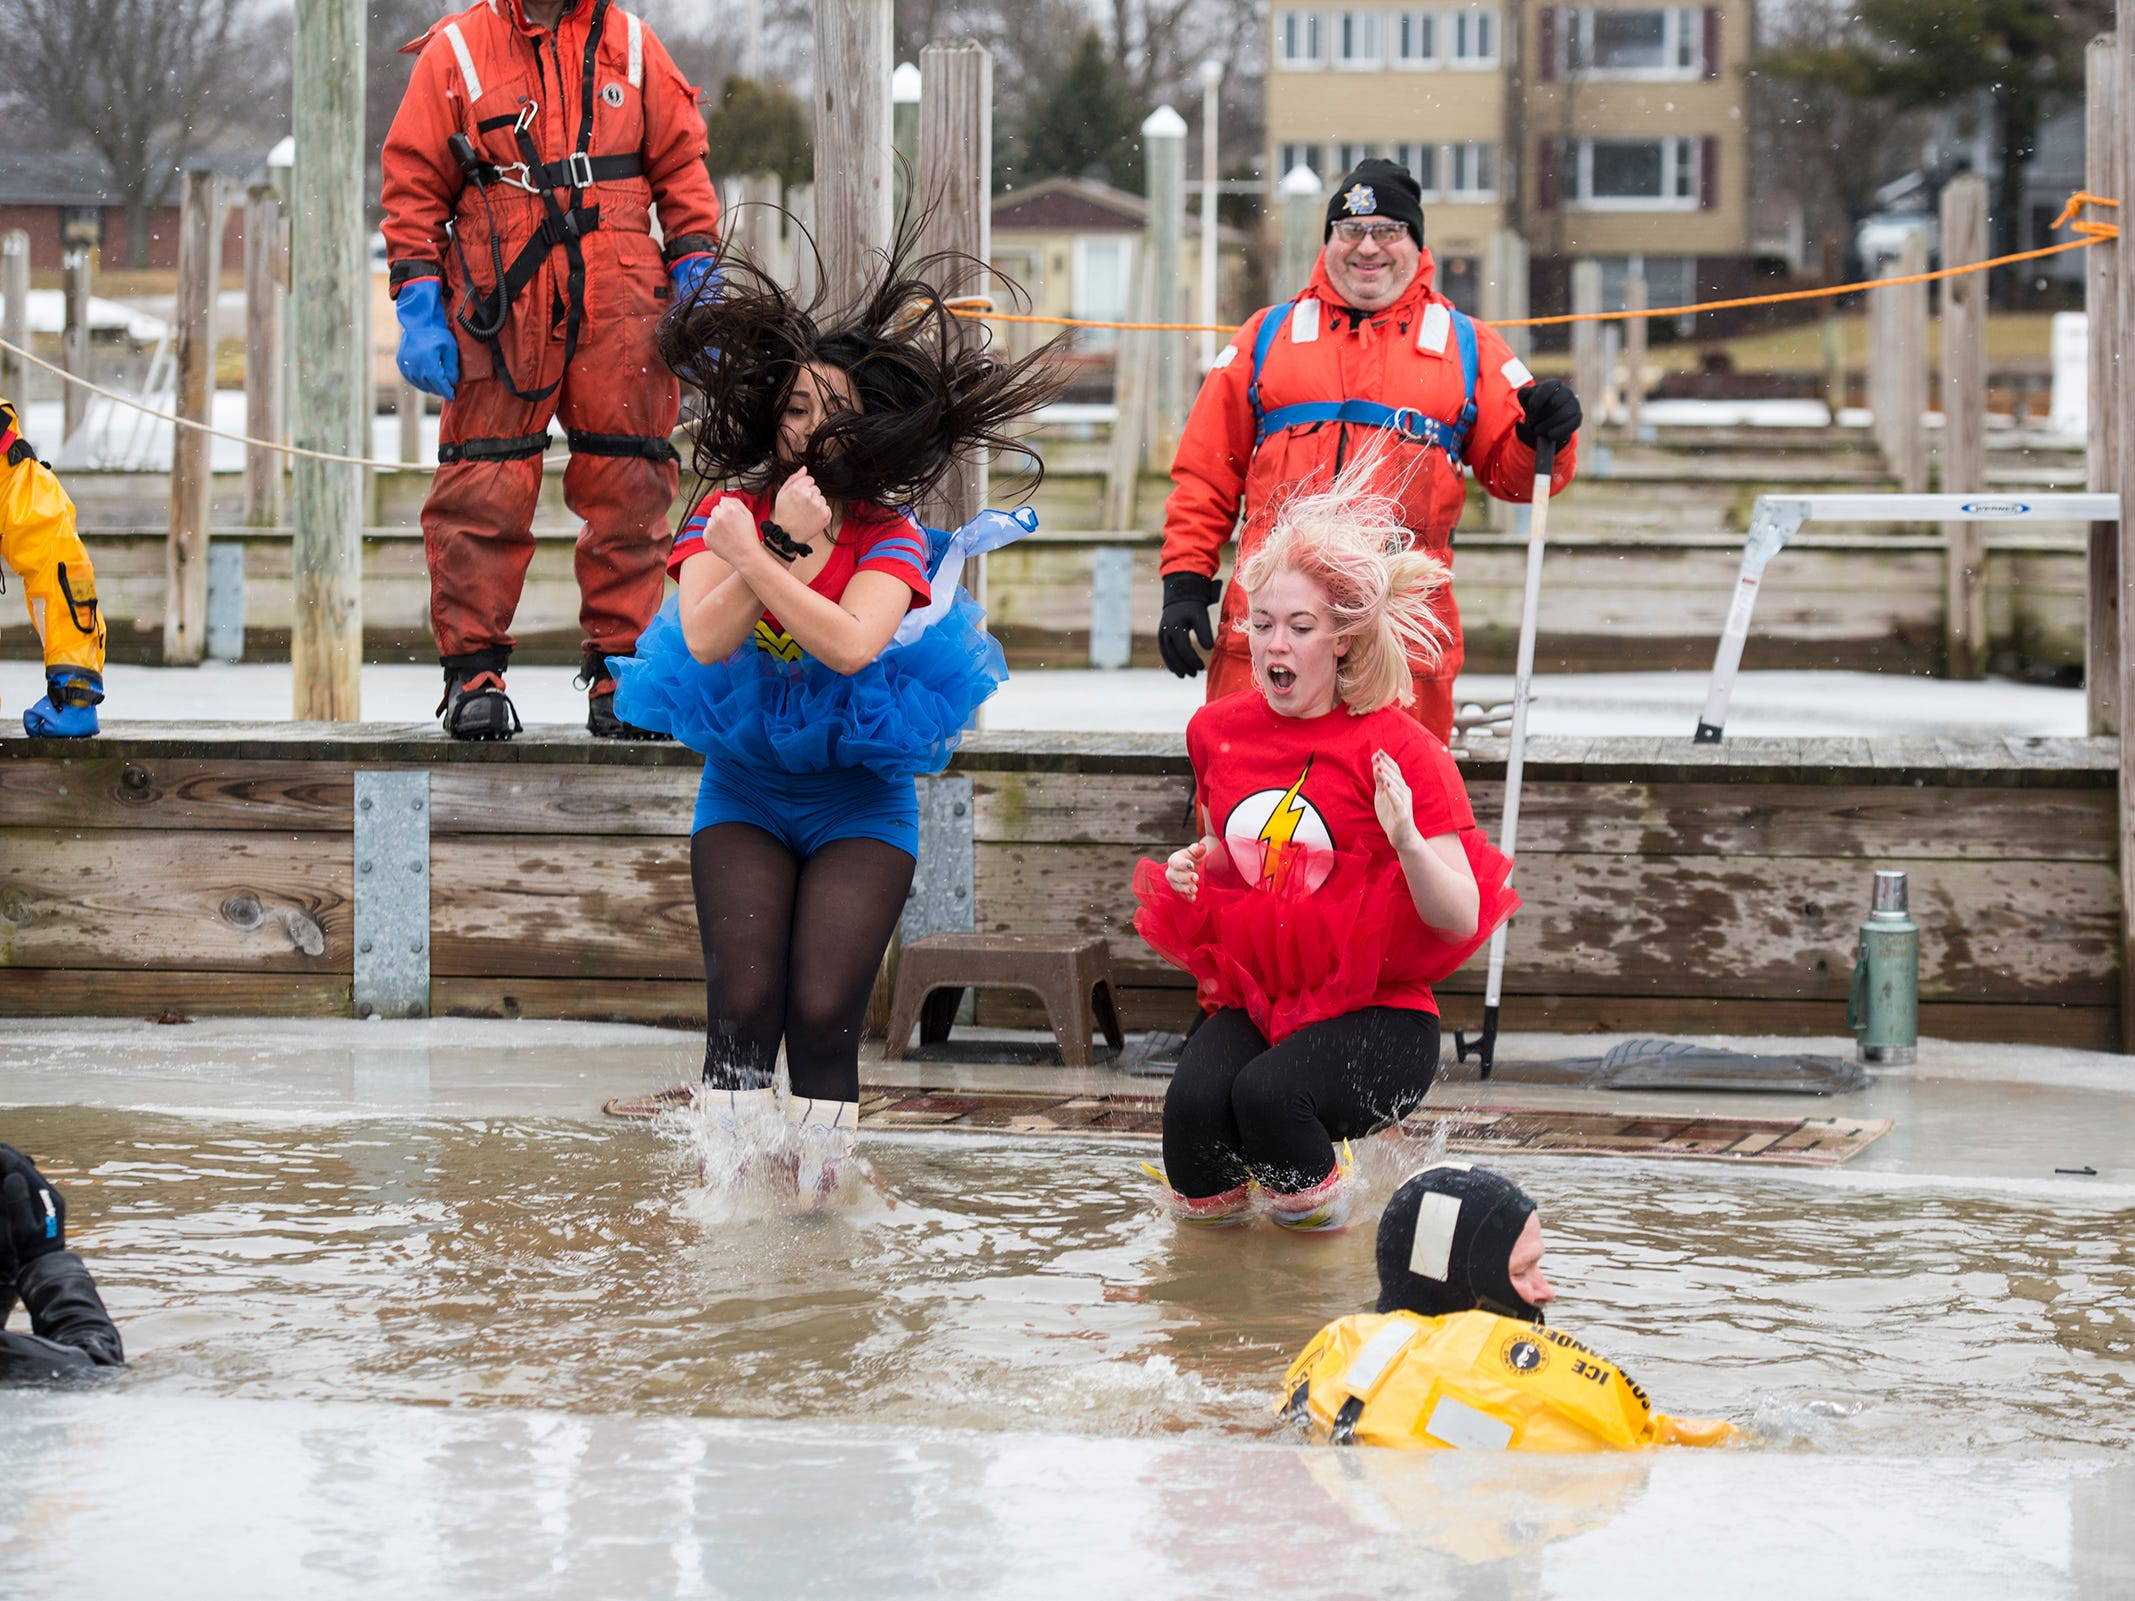 Plungers dressed as Wonderwoman and The Flash jump into the water in the St. Clair Boat Harbor through a hole cut in the ice  Sunday, Feb. 24, 2019 for the annual St. Clair Polar Plunge.